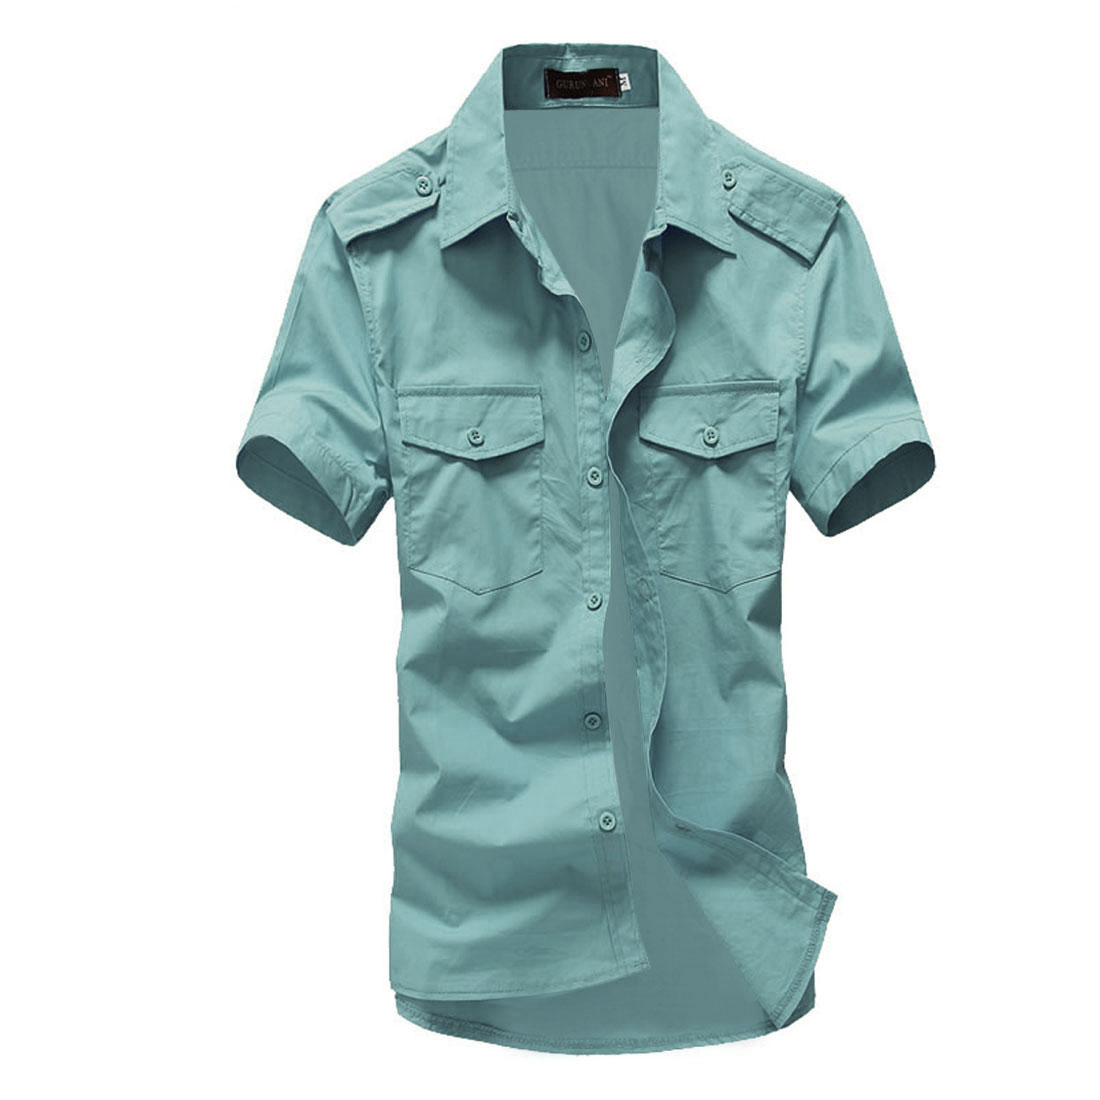 Men Single Breasted Epaulette Flap Pockets Shirts Mint L